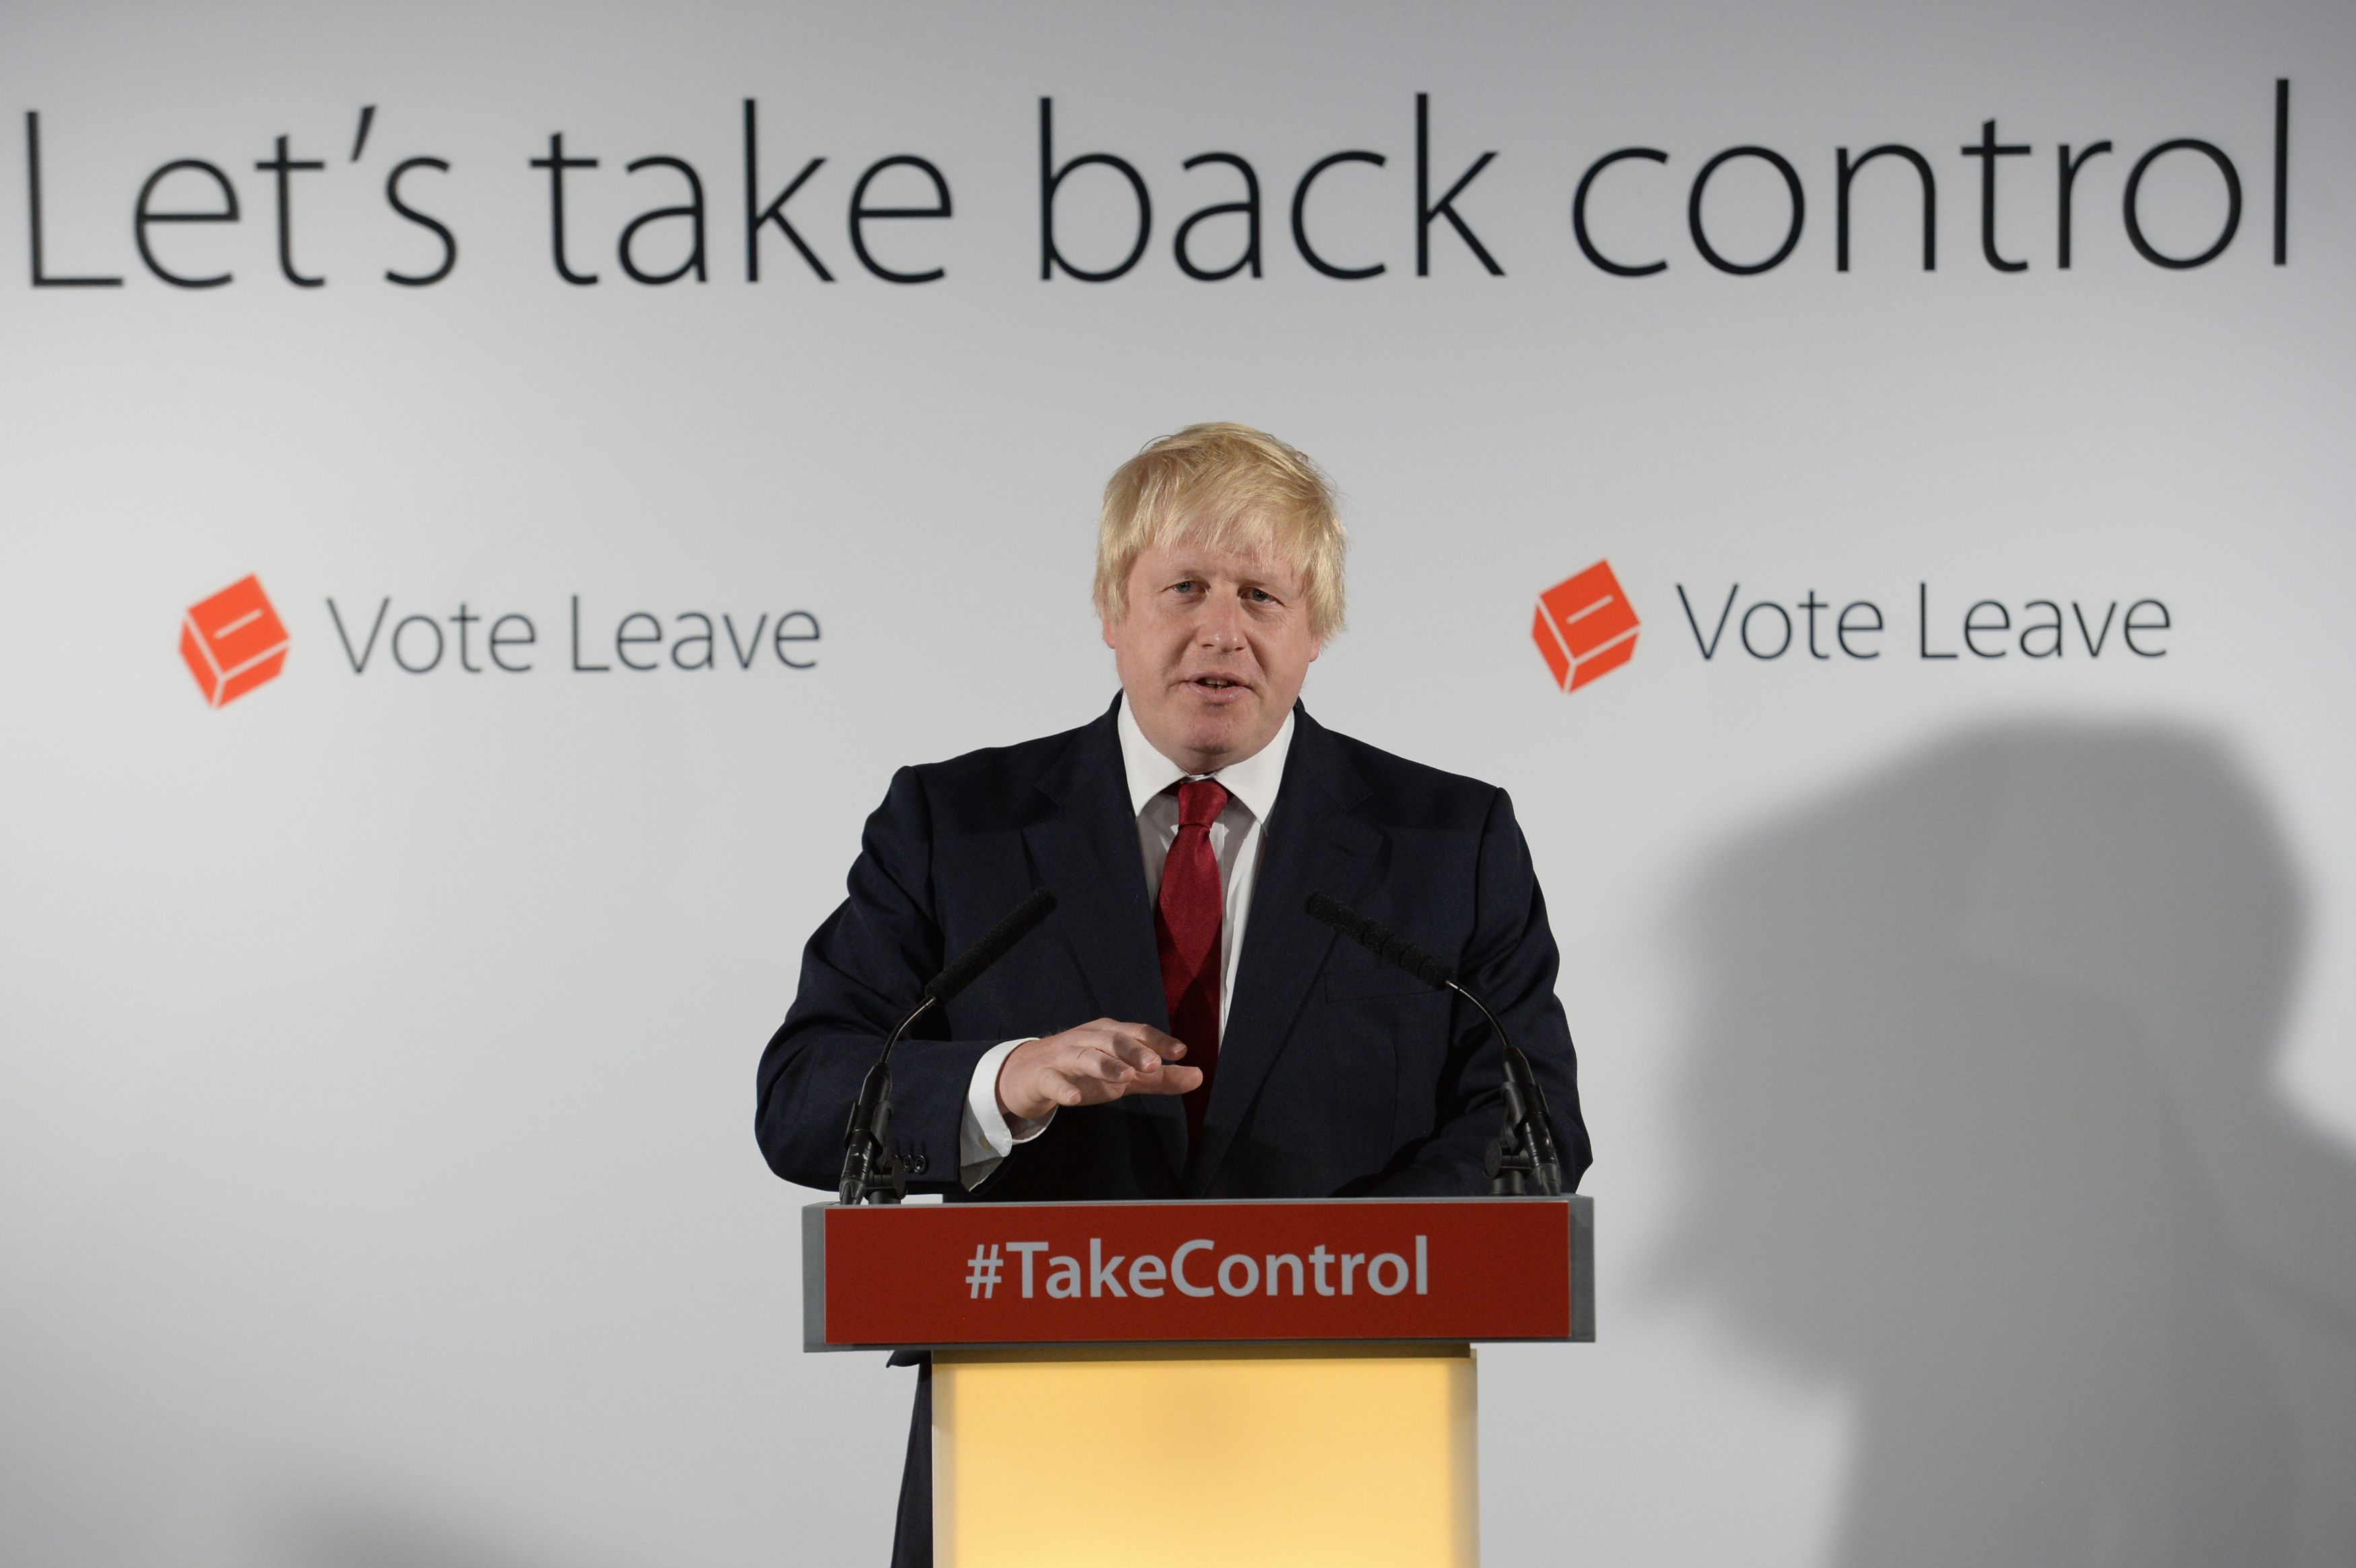 Vote Leave campaigner Boris Johnson holds a press conference at Vote Leave headquarters in London Friday June 24, 2016. Britain's Prime Minister David Cameron announced Friday that he will quit as Prime Minister following a defeat in the referendum which ended with a vote for Britain to leave the European Union. (Stefan Rousseau/Pool via AP)